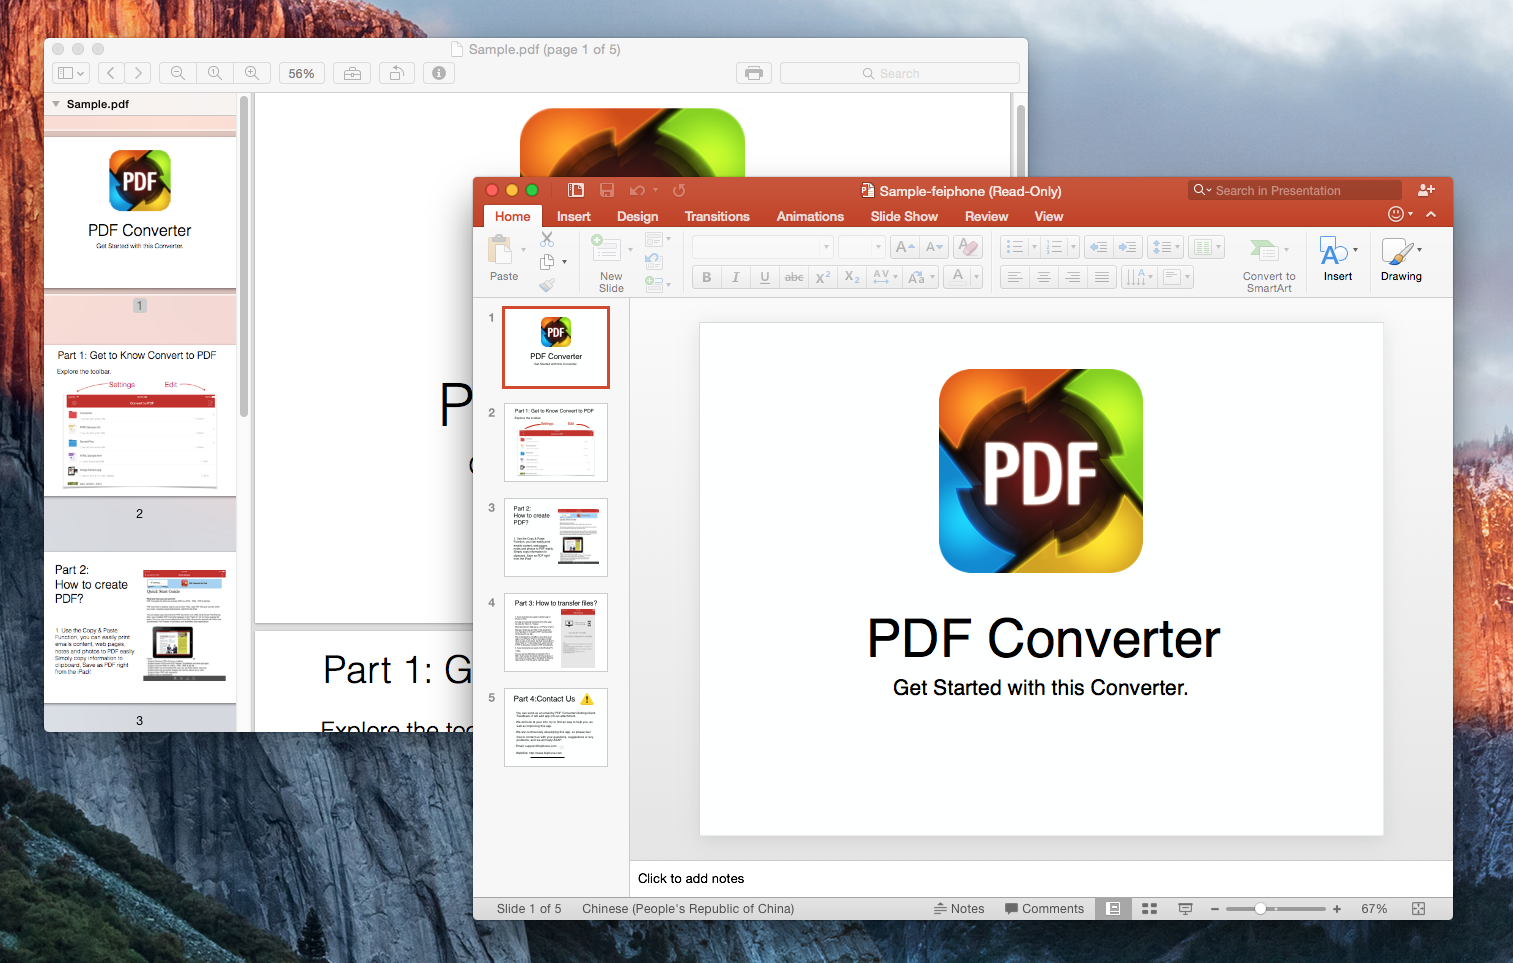 Free download convert microsoft office to pdf ggettexo - Online office to pdf converter ...